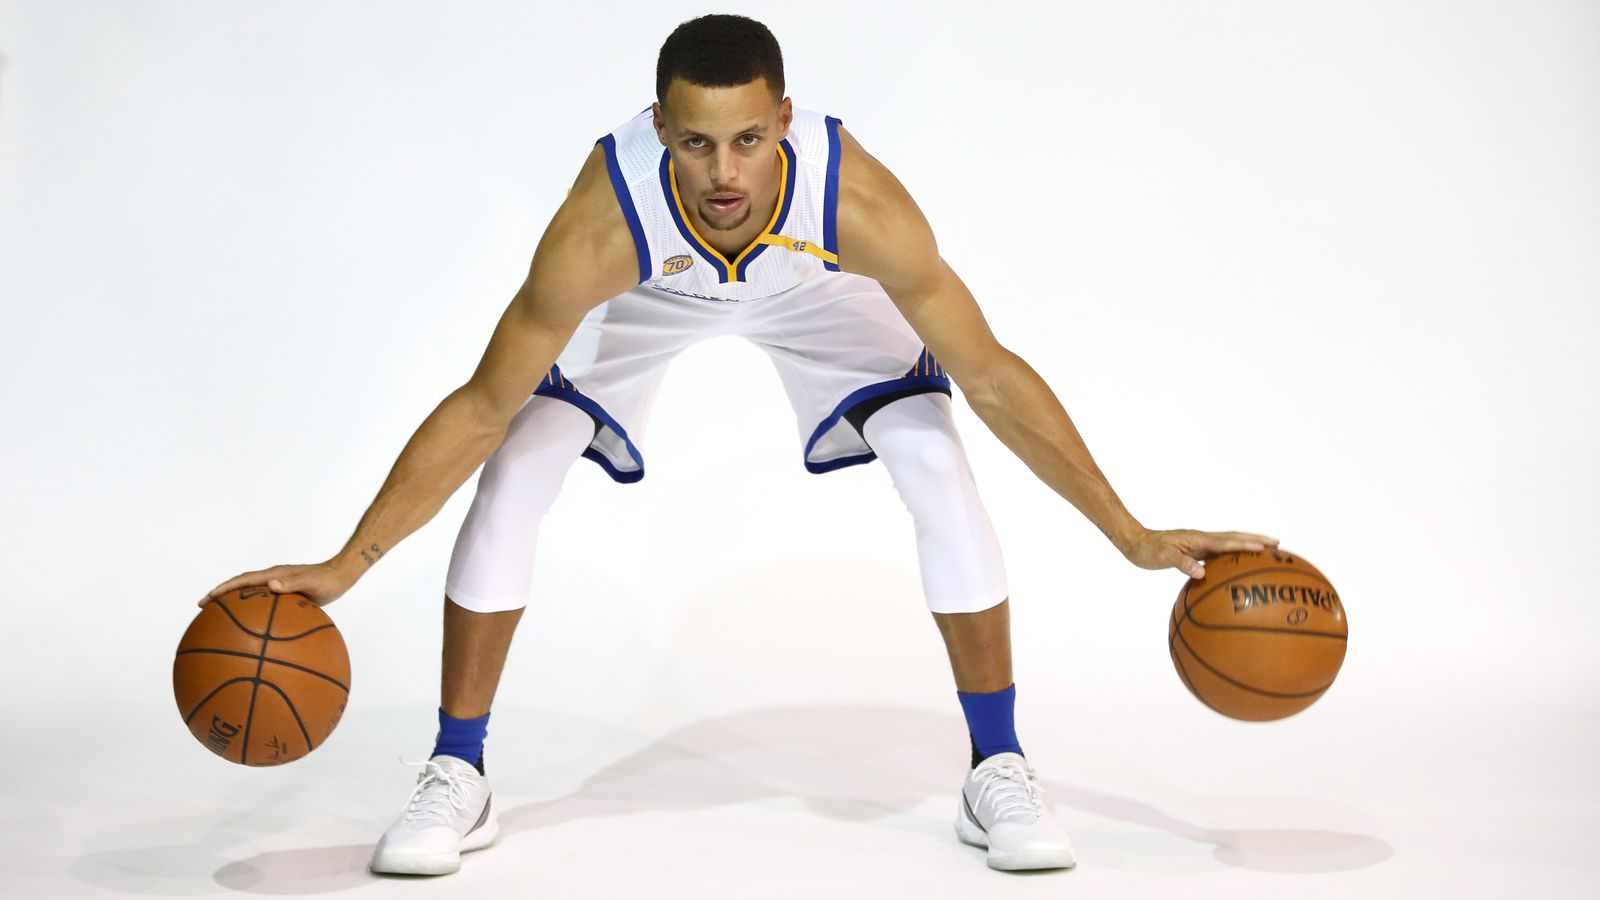 Stephen Curry S Trainer Explains The Slick Behind The Back